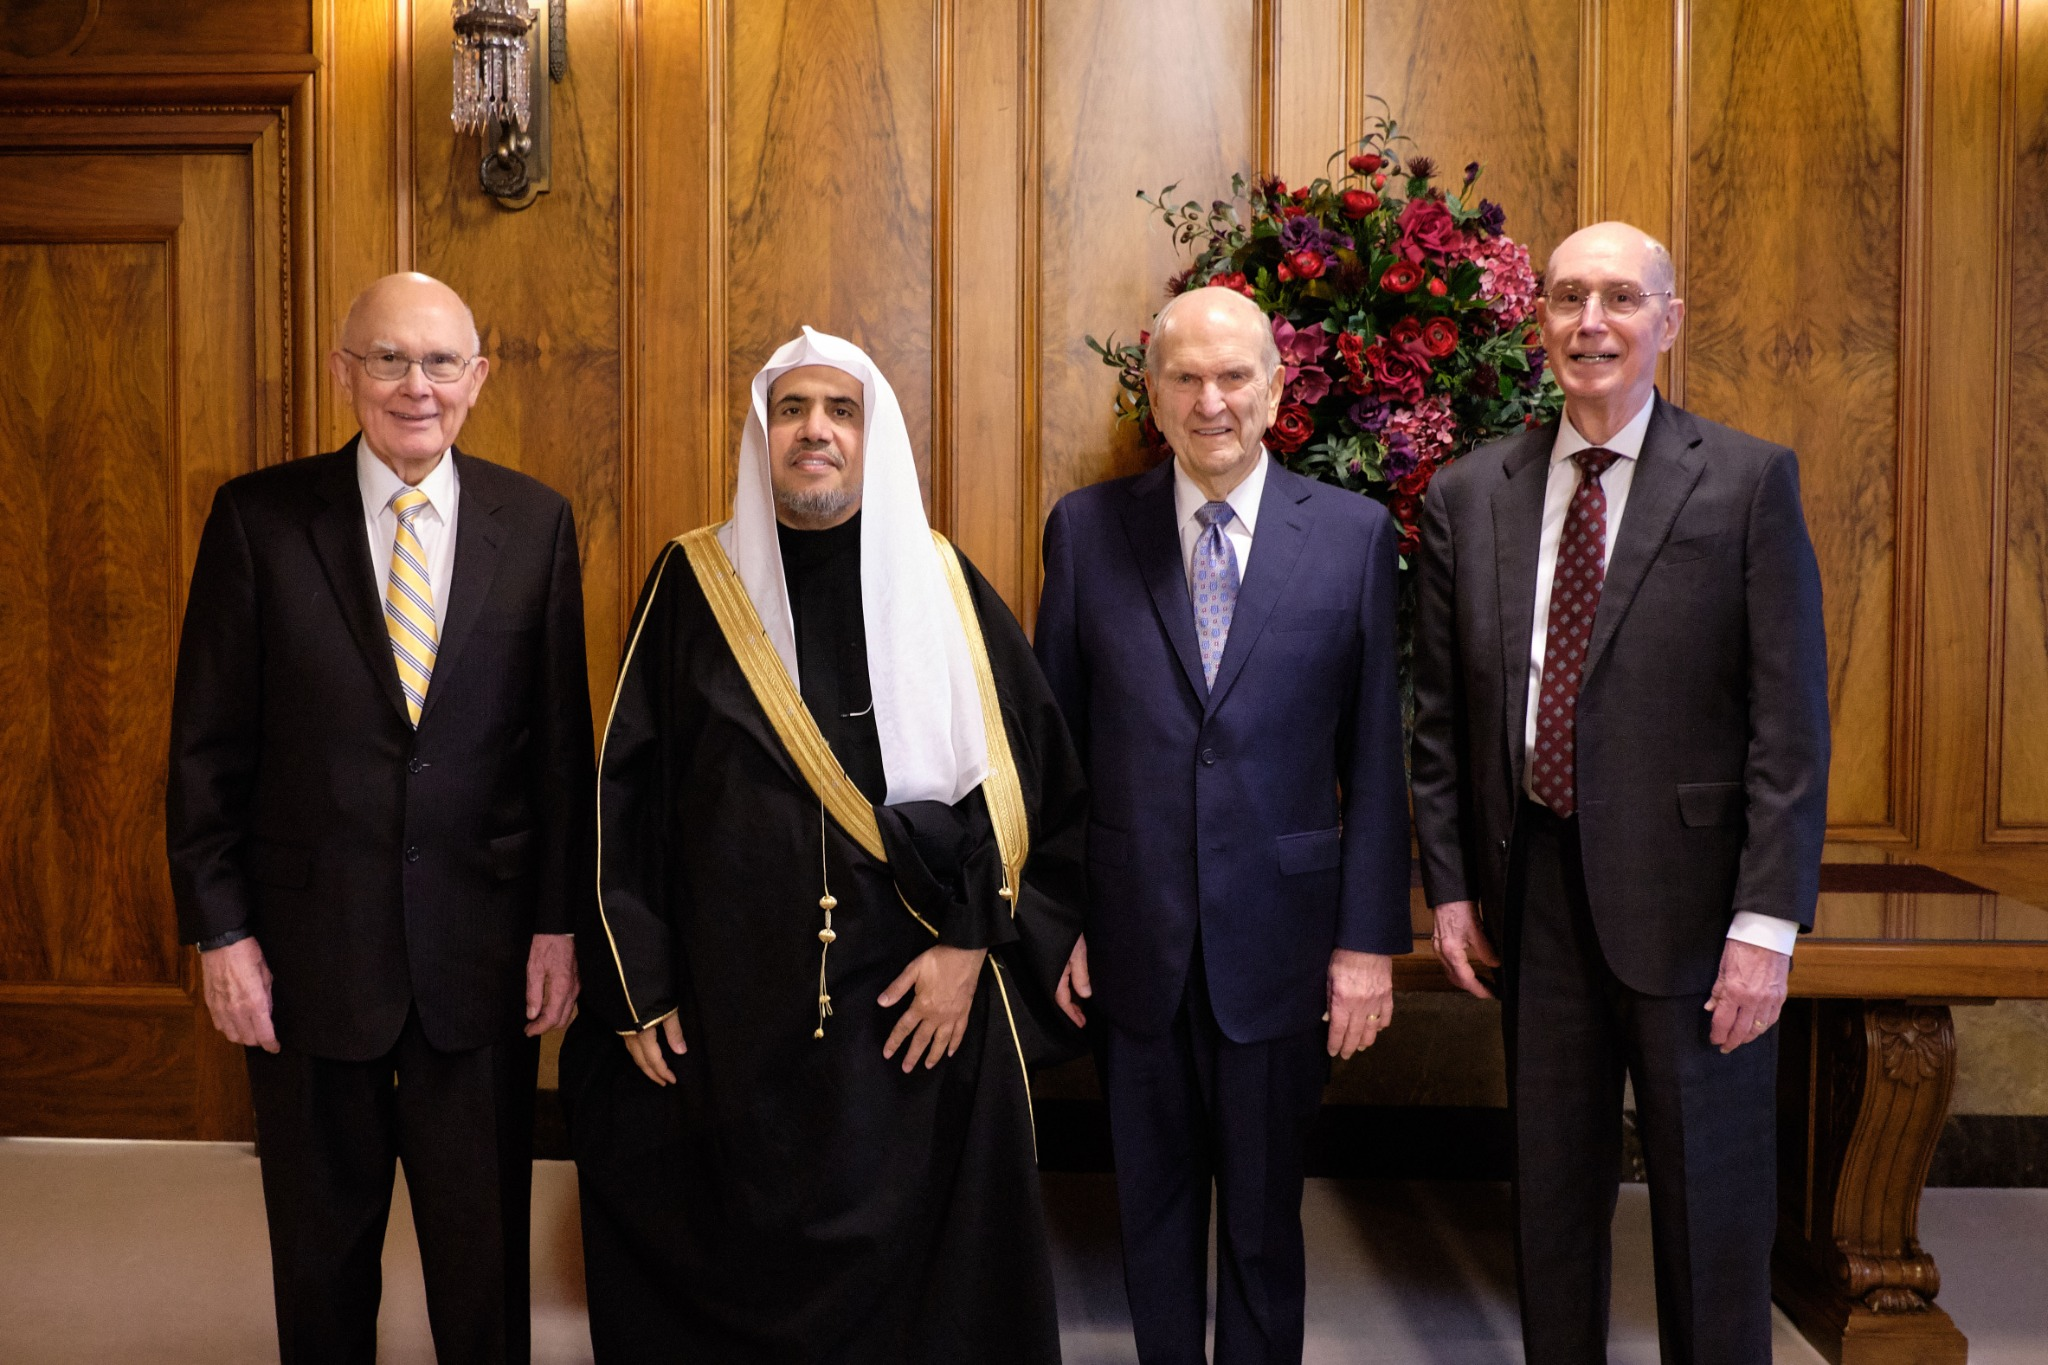 Members of the First Presidency of The Church of Jesus Christ of Latter-day Saints meet His Excellency Dr. Mohammad Al-Issa, secretary-general of the Muslim World League, on Nov. 5, 2019.